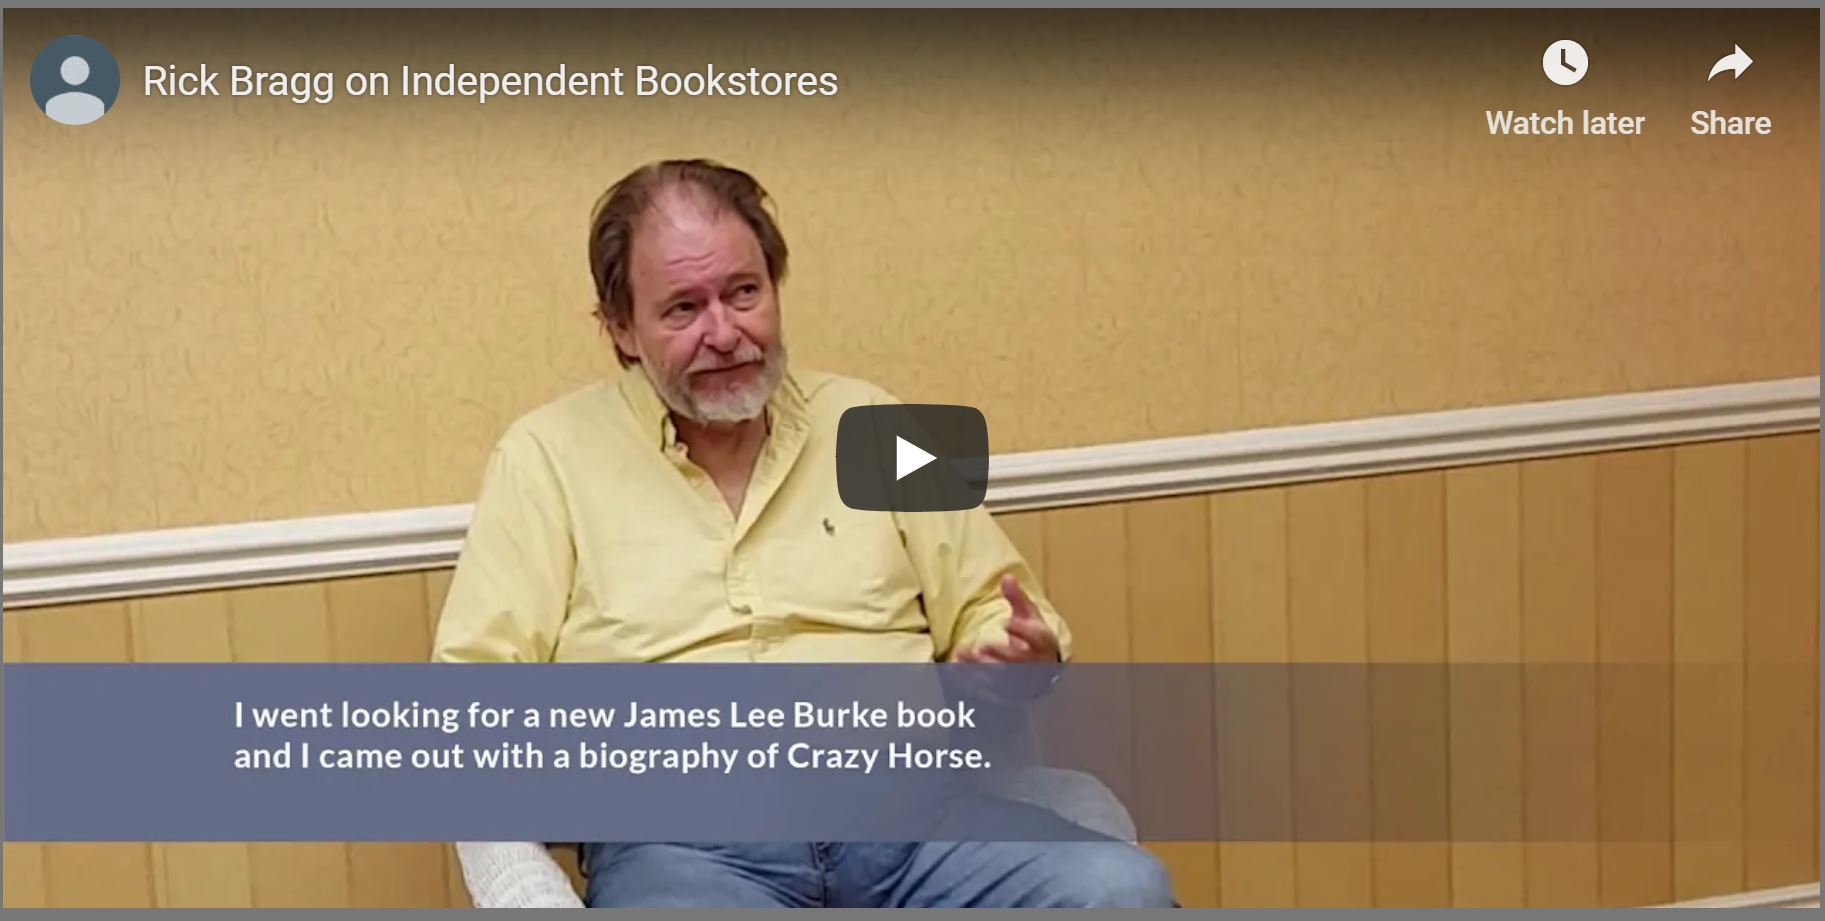 Rick Bragg on Indie Bookstores